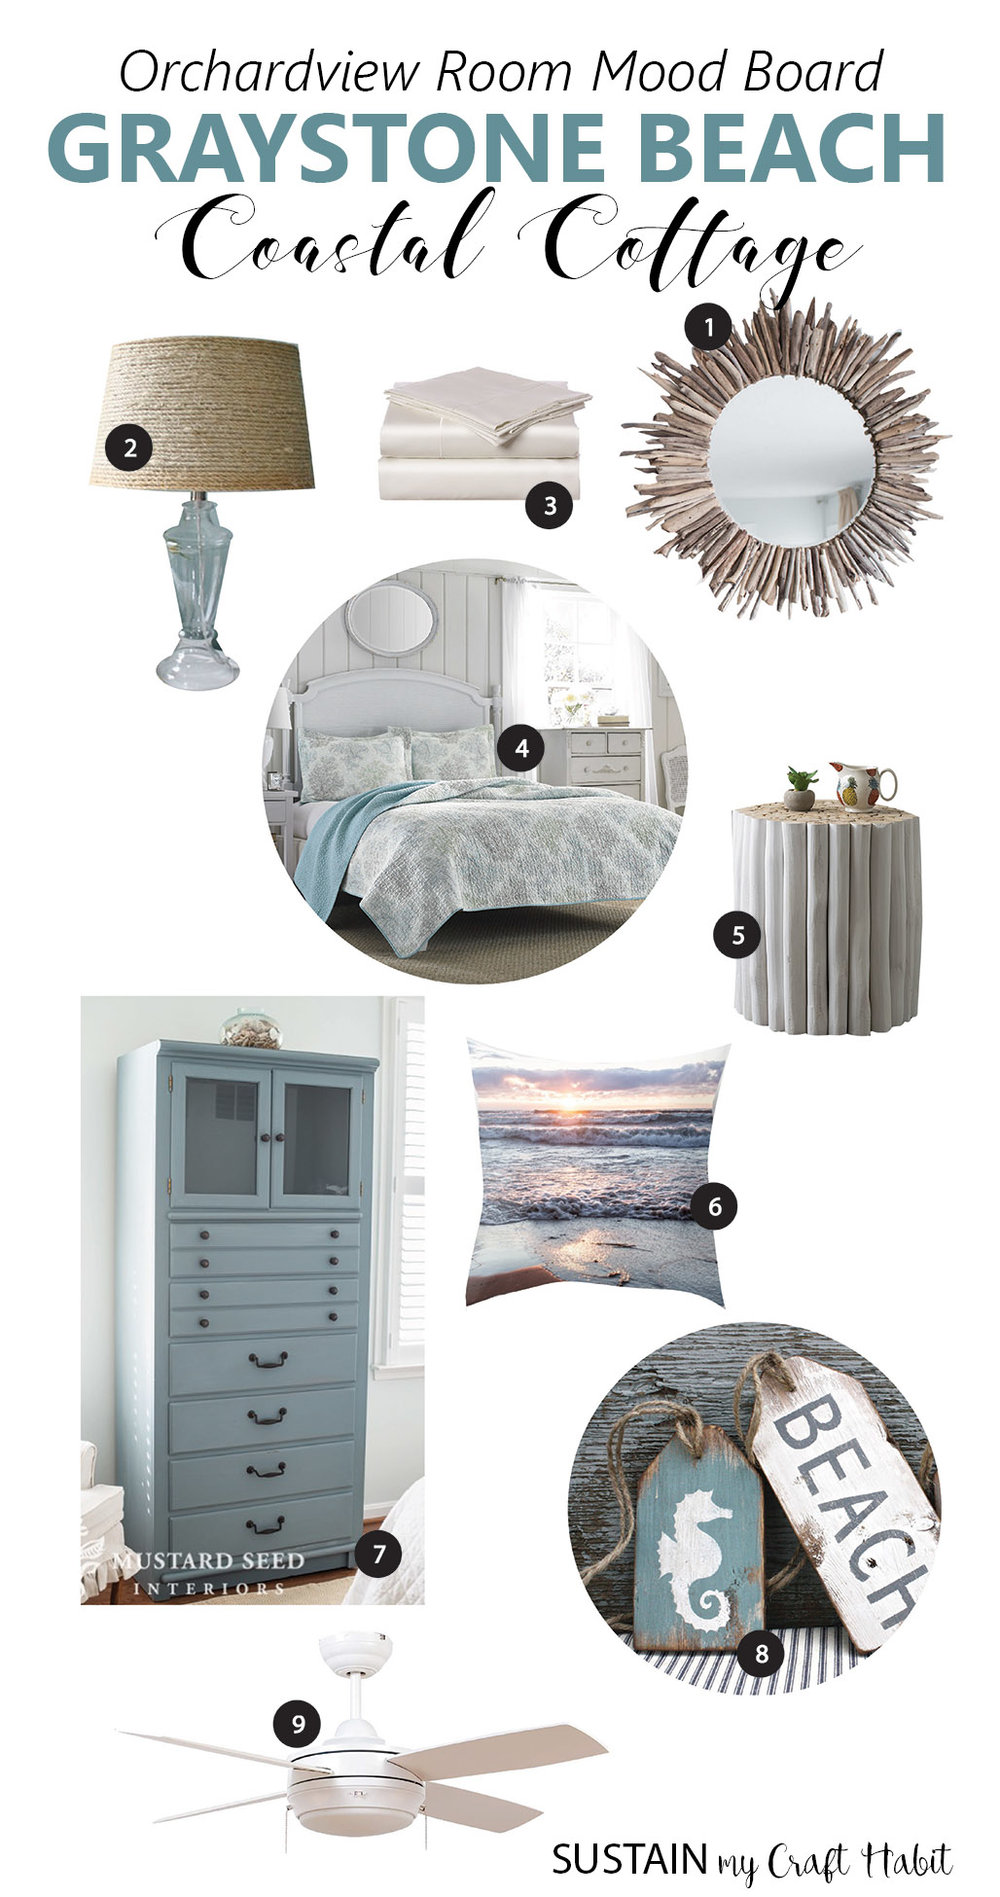 Cottage Reno Orchardview Room Mood Board And DIY Coastal Decor Ideas